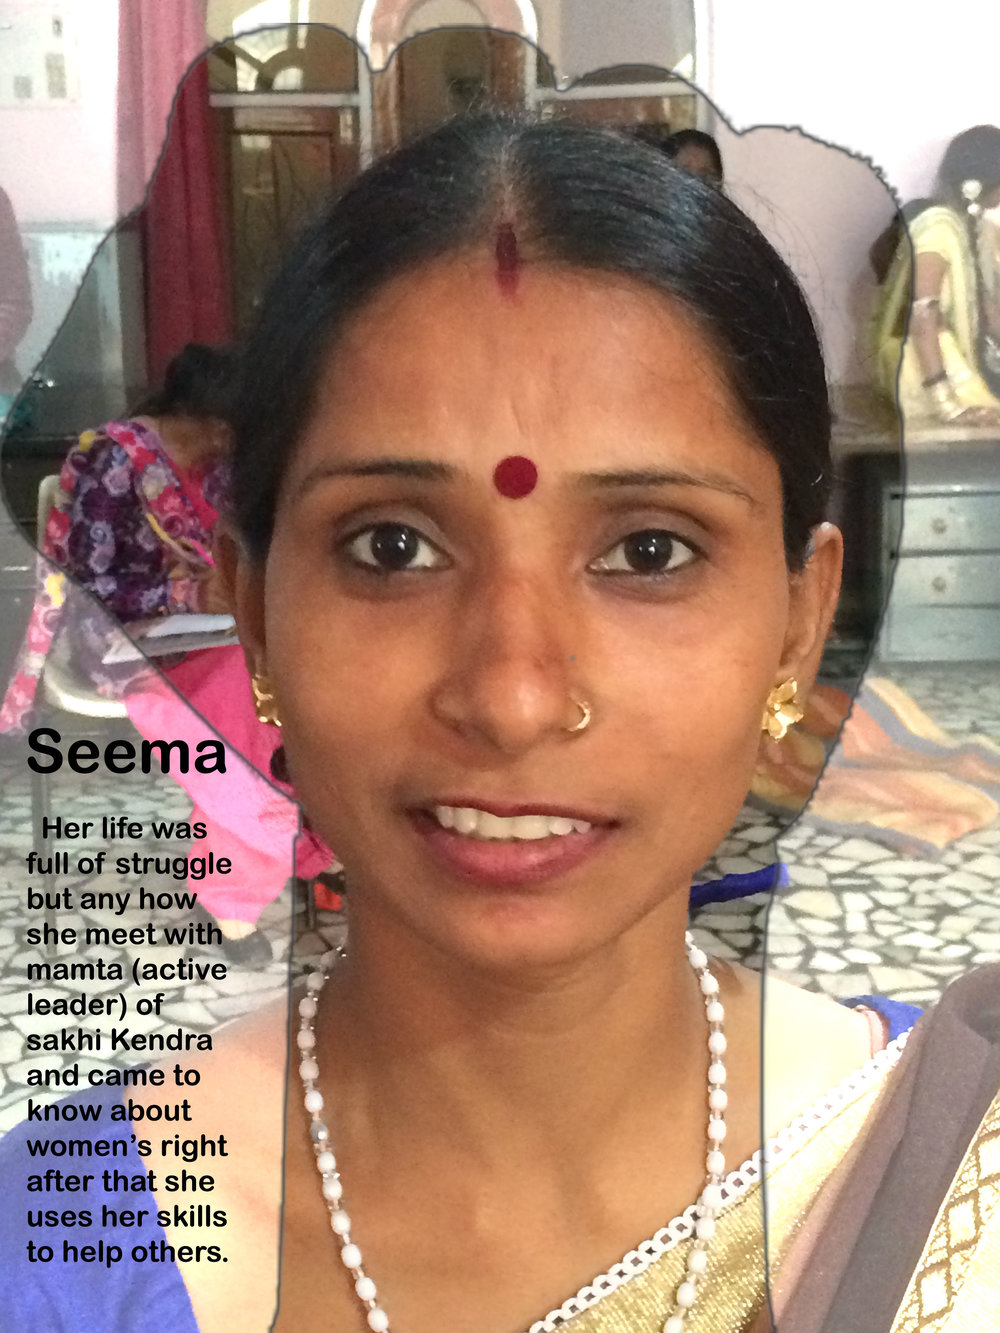 Seema women huiman right defender--.jpg